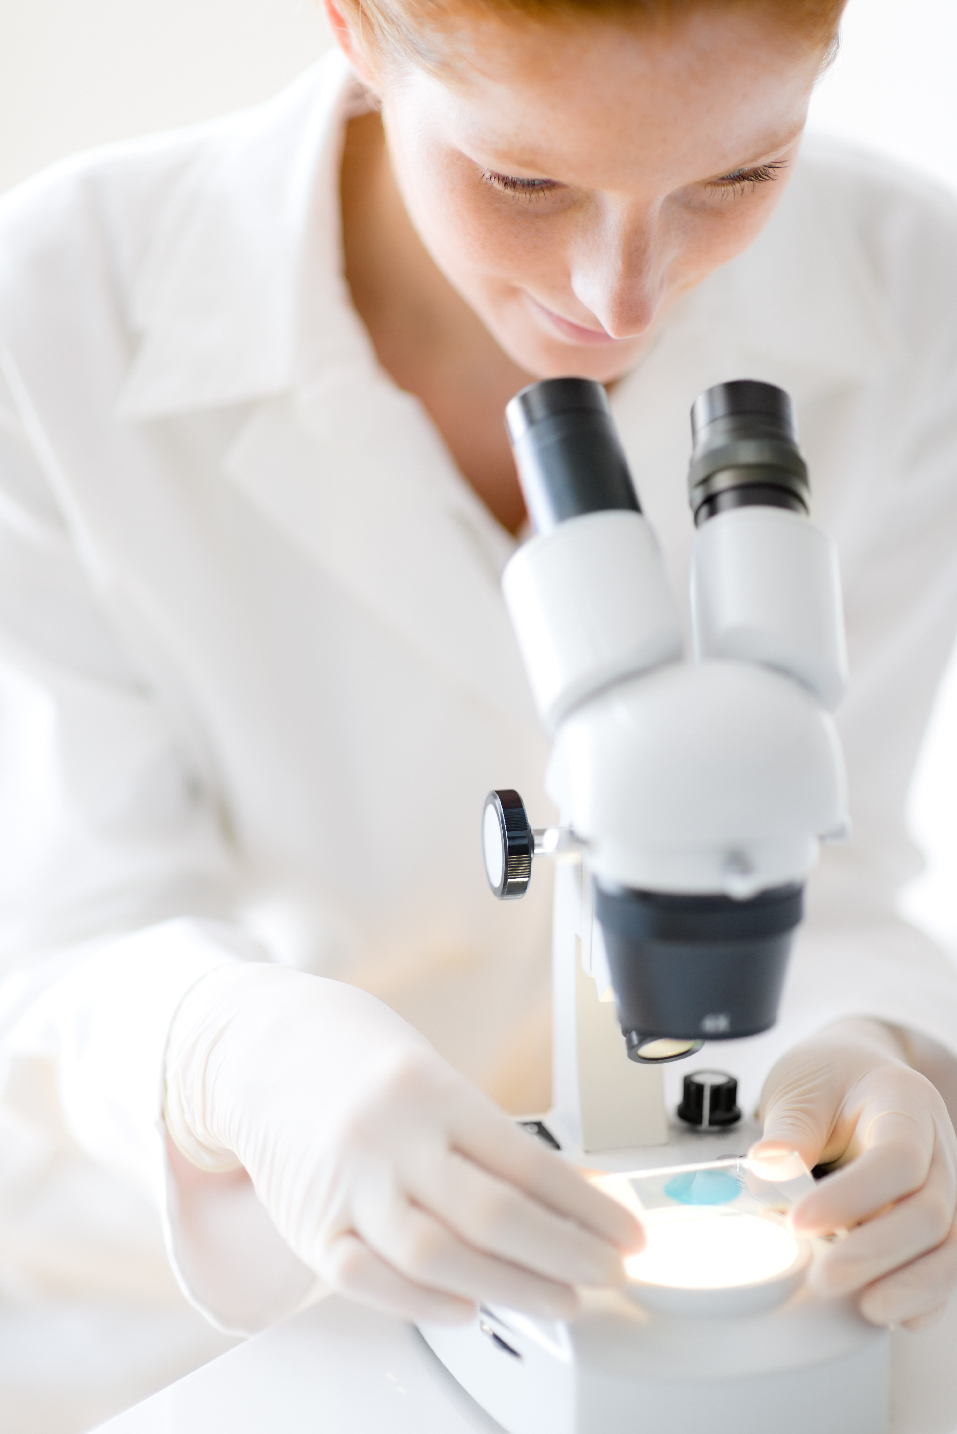 woman looking at sample under microscope